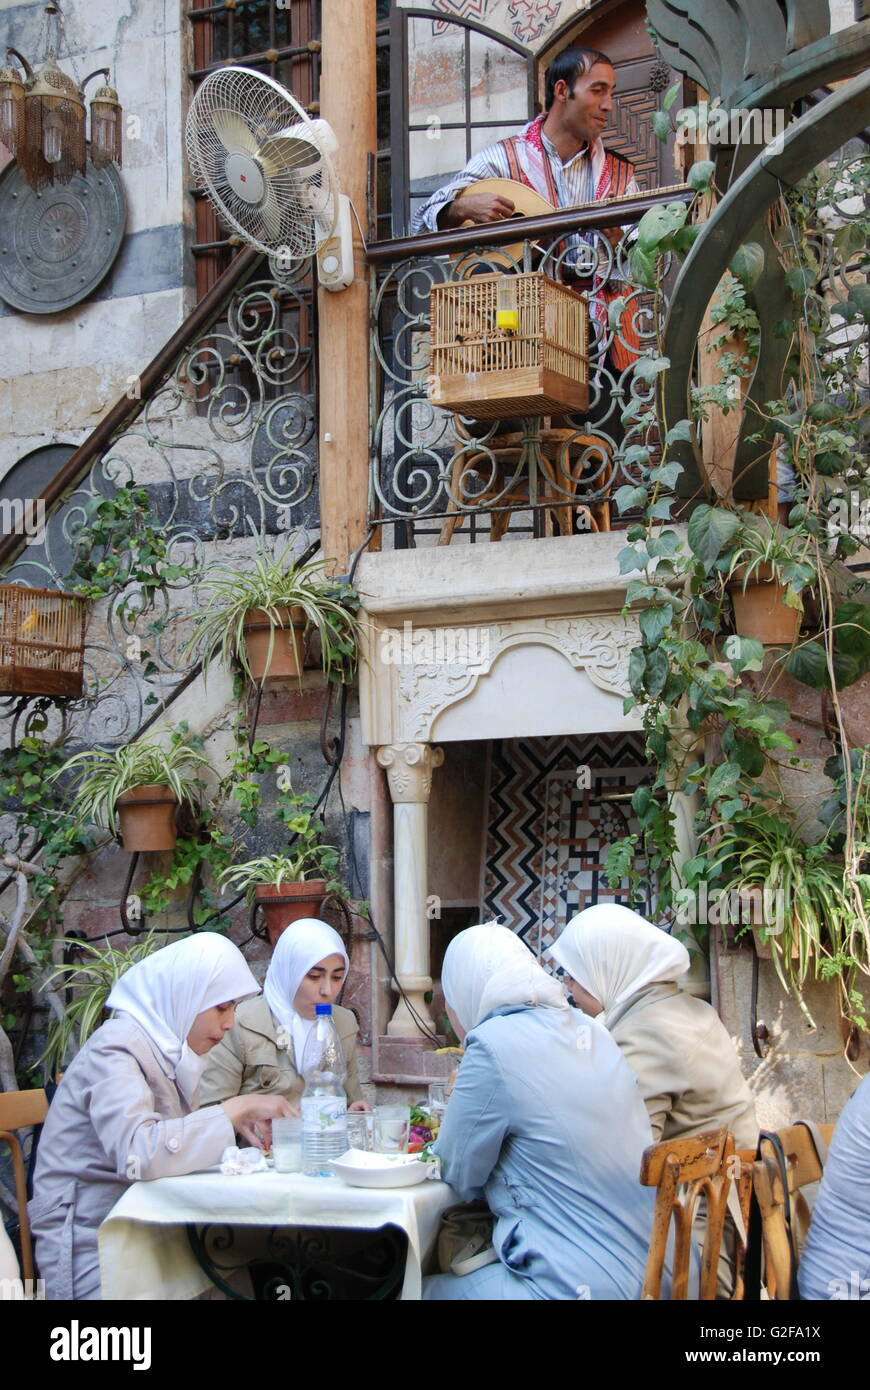 Damascus - Beit Jabri Restaurant, Four Ladies In Hijab Having Lunch - Stock Image